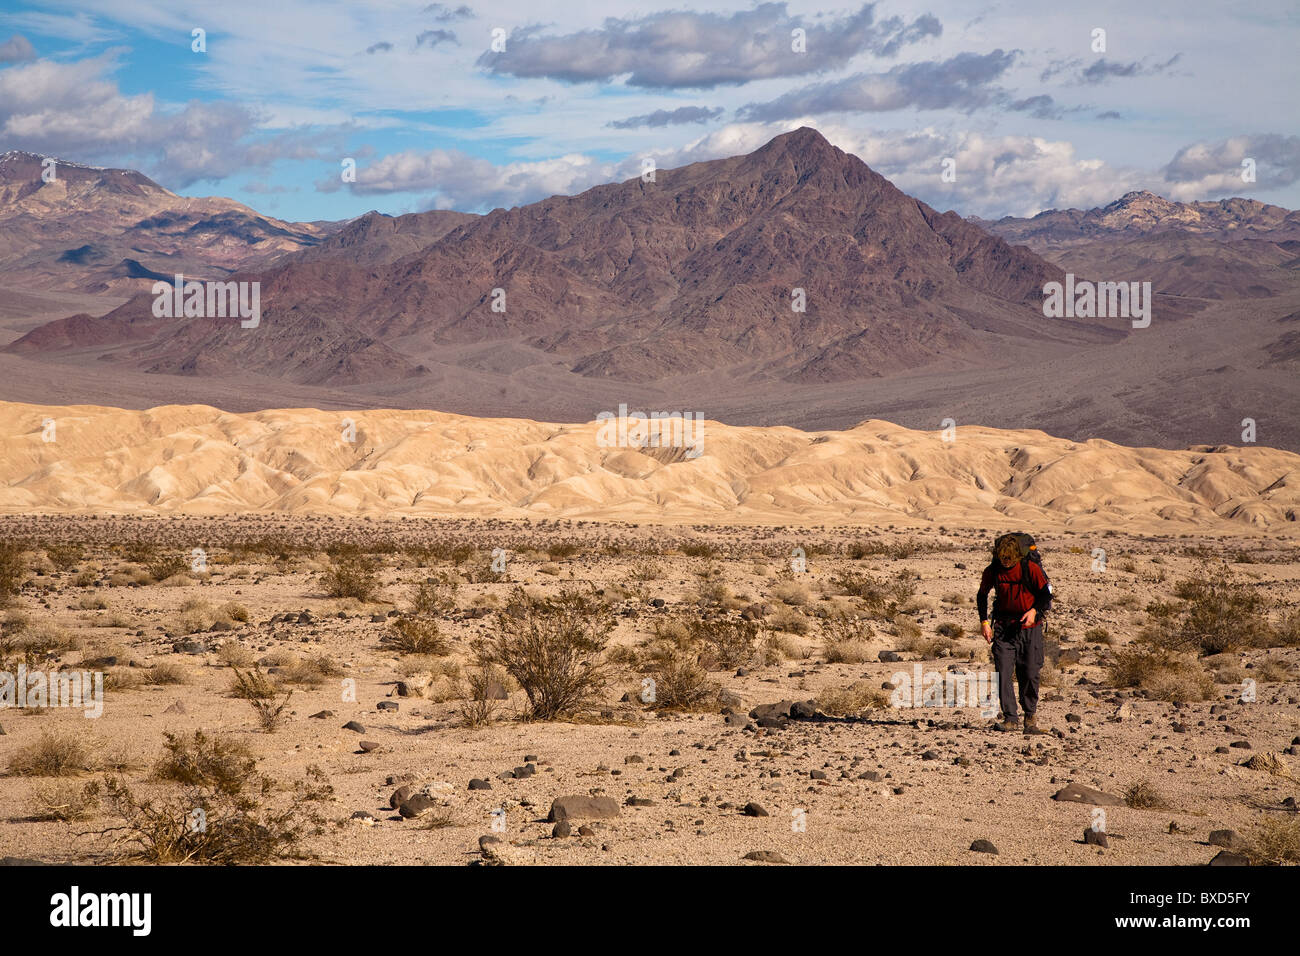 A young man backpacks through the Confidence Hills in Death Valley Nation Park, California. - Stock Image